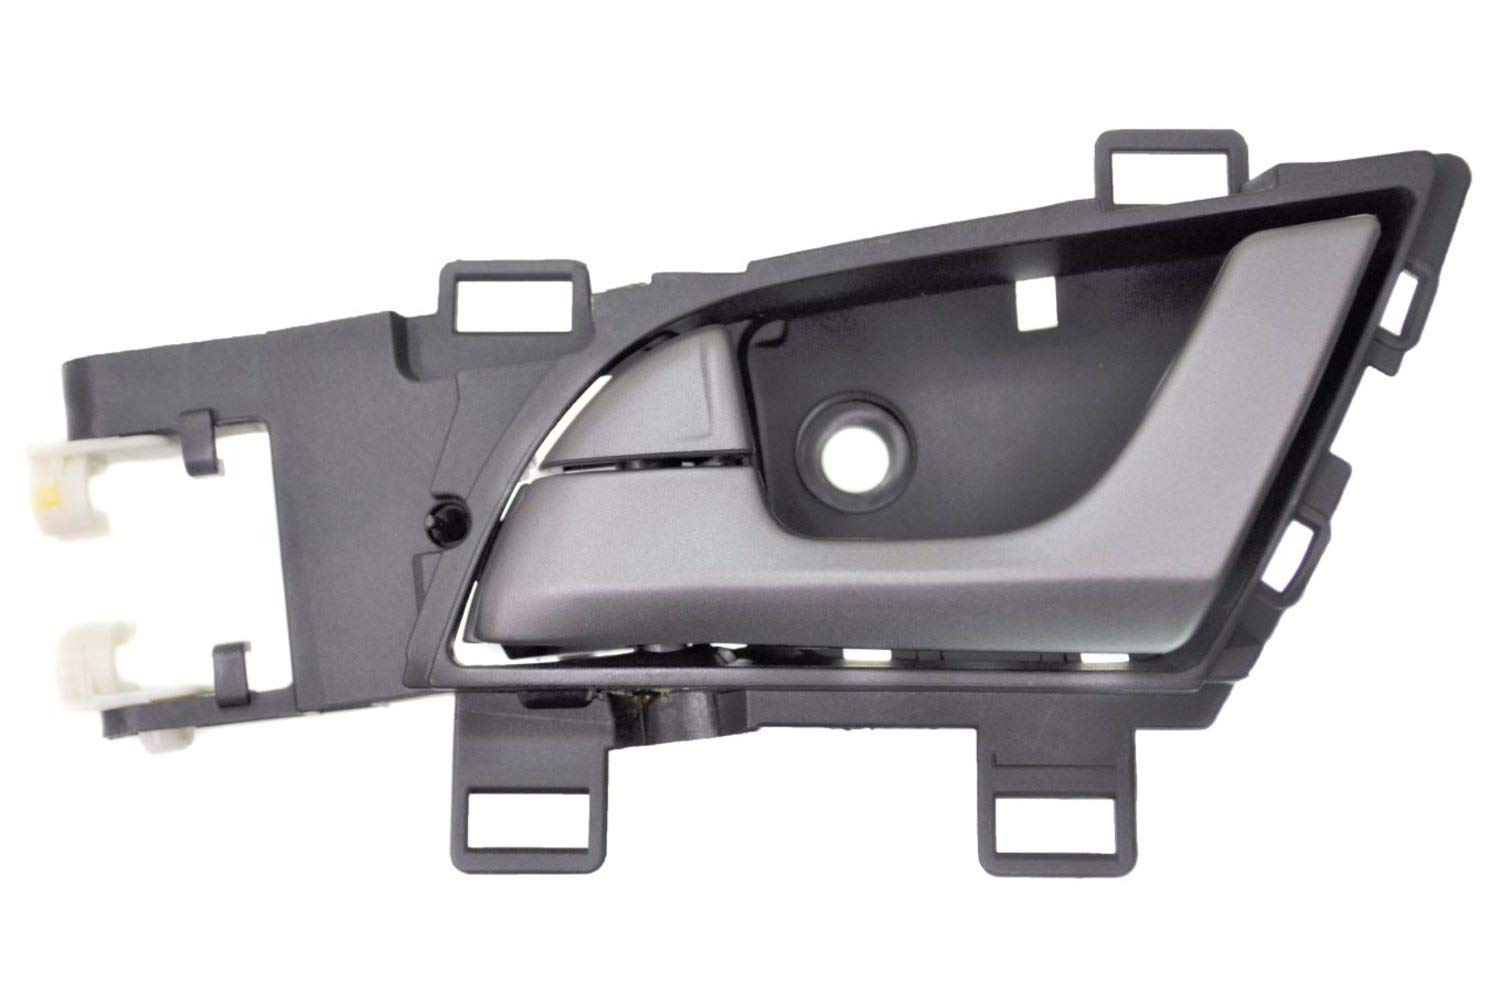 PT Auto Warehouse AC-2405RA-FL Front Left Driver Side Interior Inner Inside Door Handle Silver Lever with Black Housing